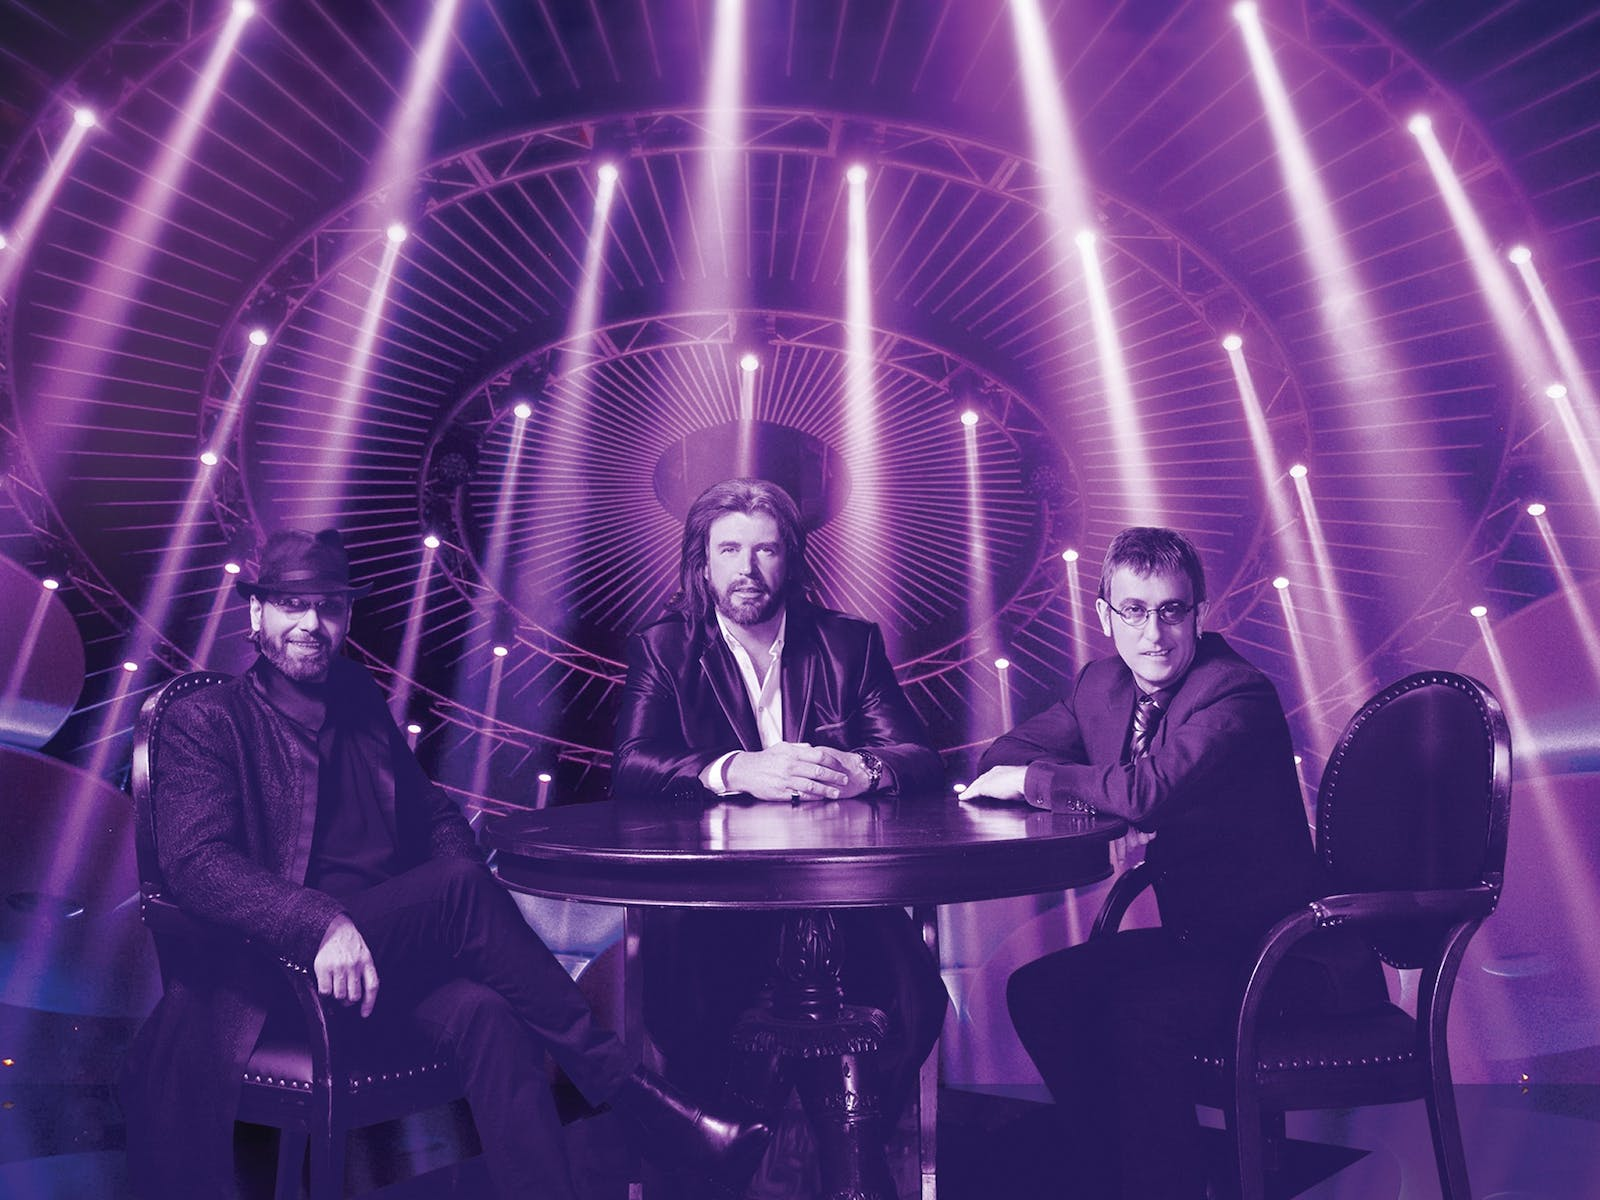 Image for The Australian Bee Gees Show - 25th Anniversary Tour - Devonport